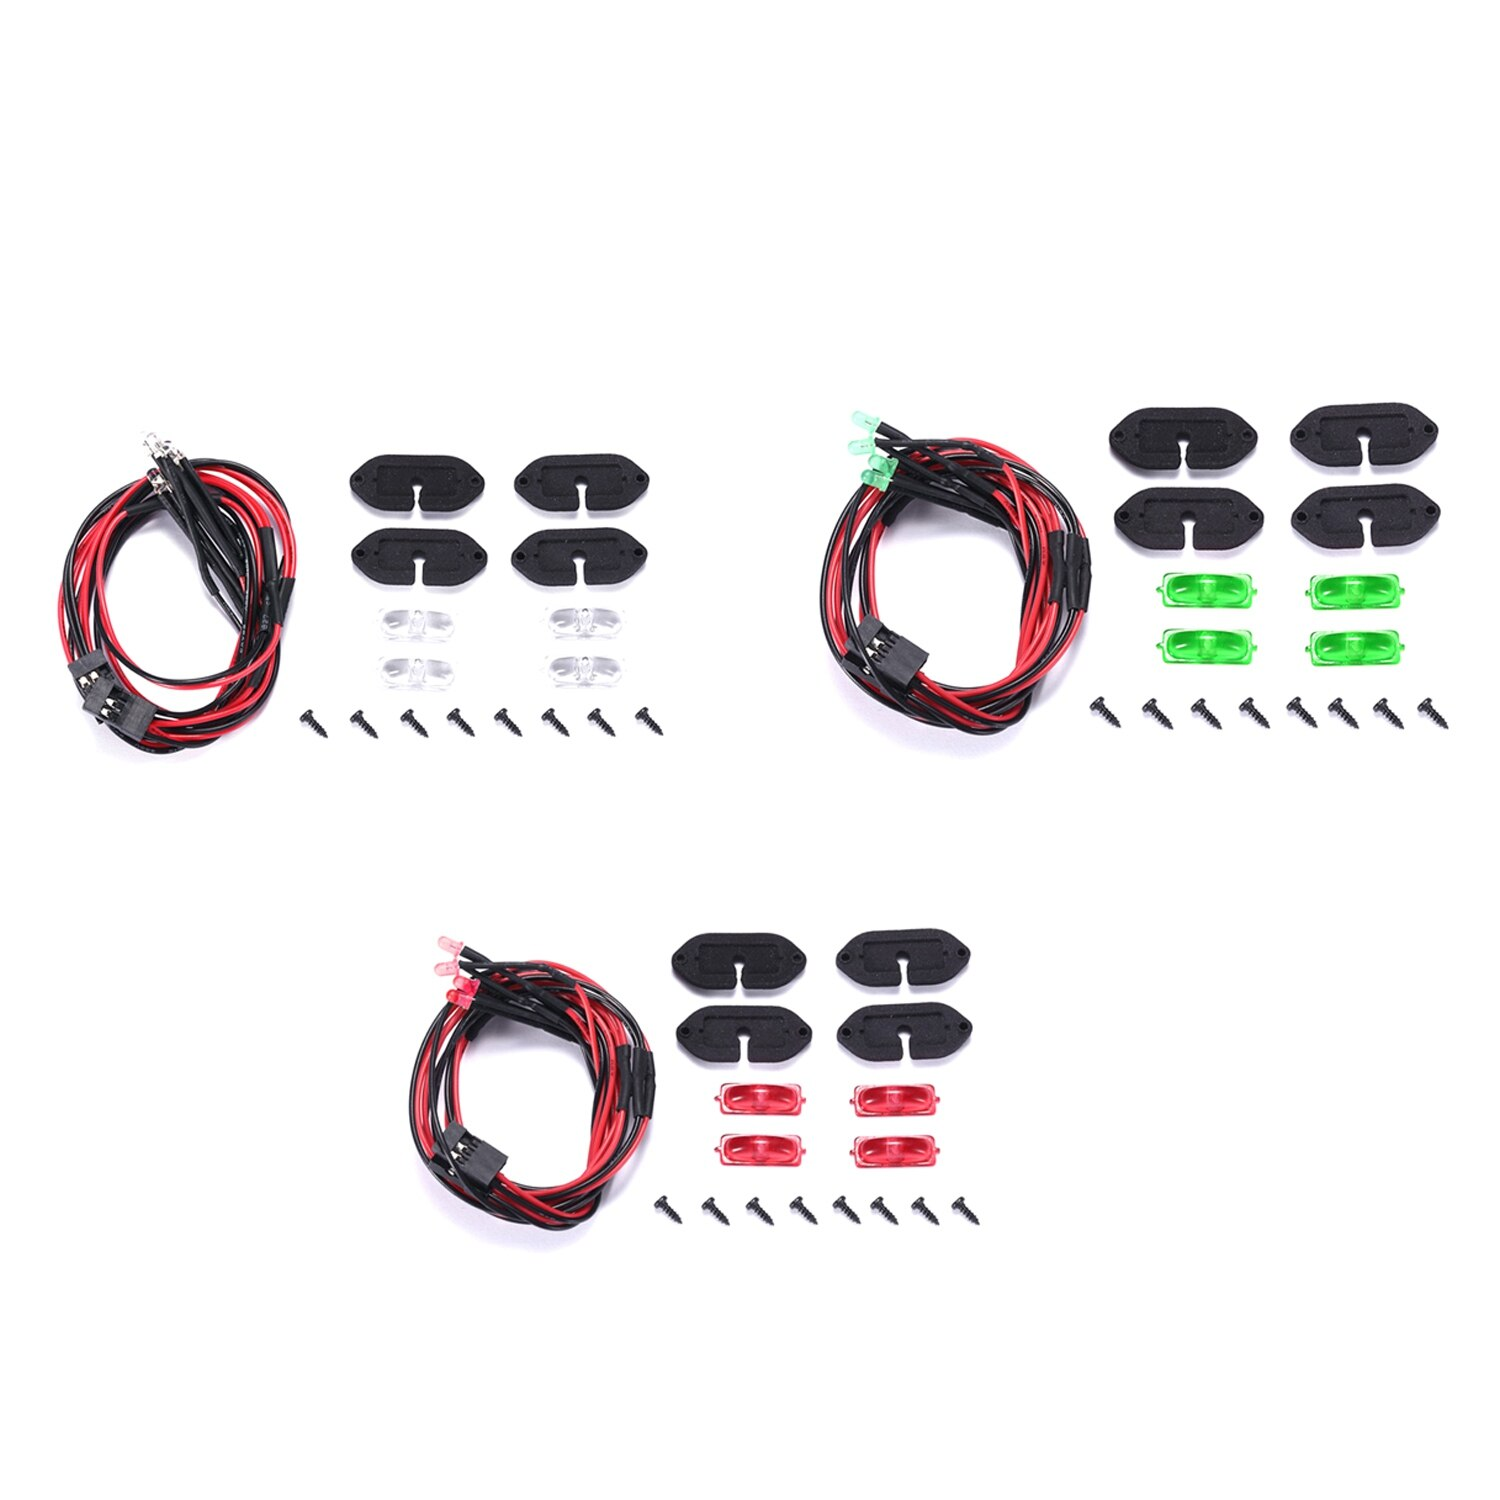 for RC Crawler AXIAL SCX10 III AXI03007 Wheel Eyebrow Atmosphere Light for RC Crawler AXIAL SCX10 III AXI03007 enlarge